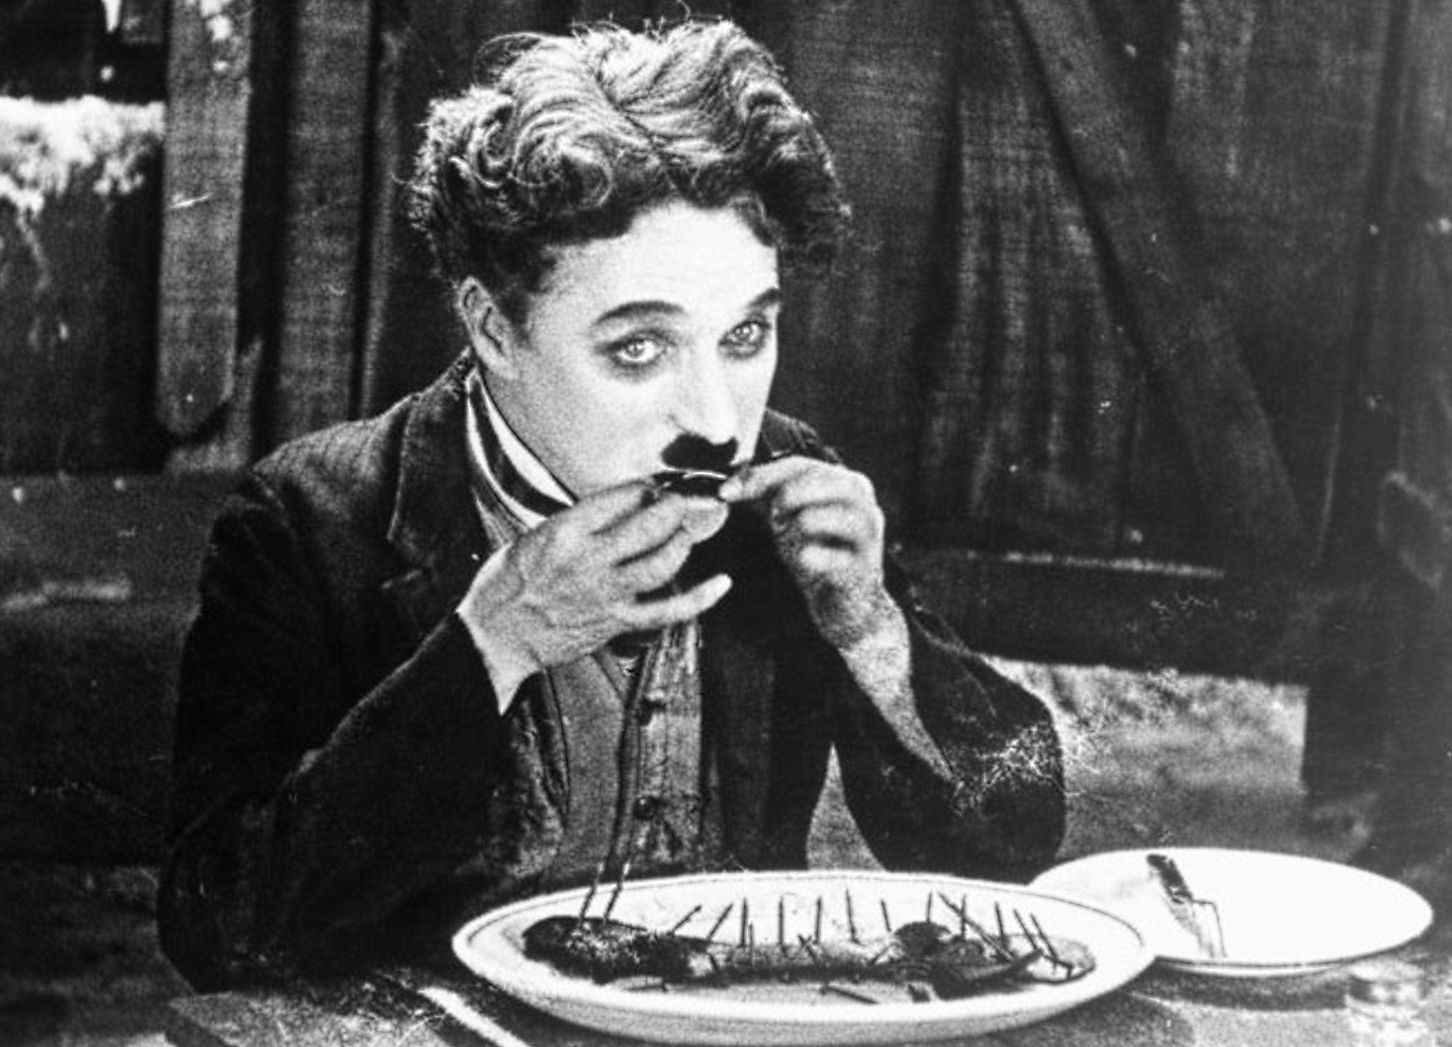 Film - Charlie Chaplin - 1925 - Gold Rush - Corsa all'Oro - scene dinner